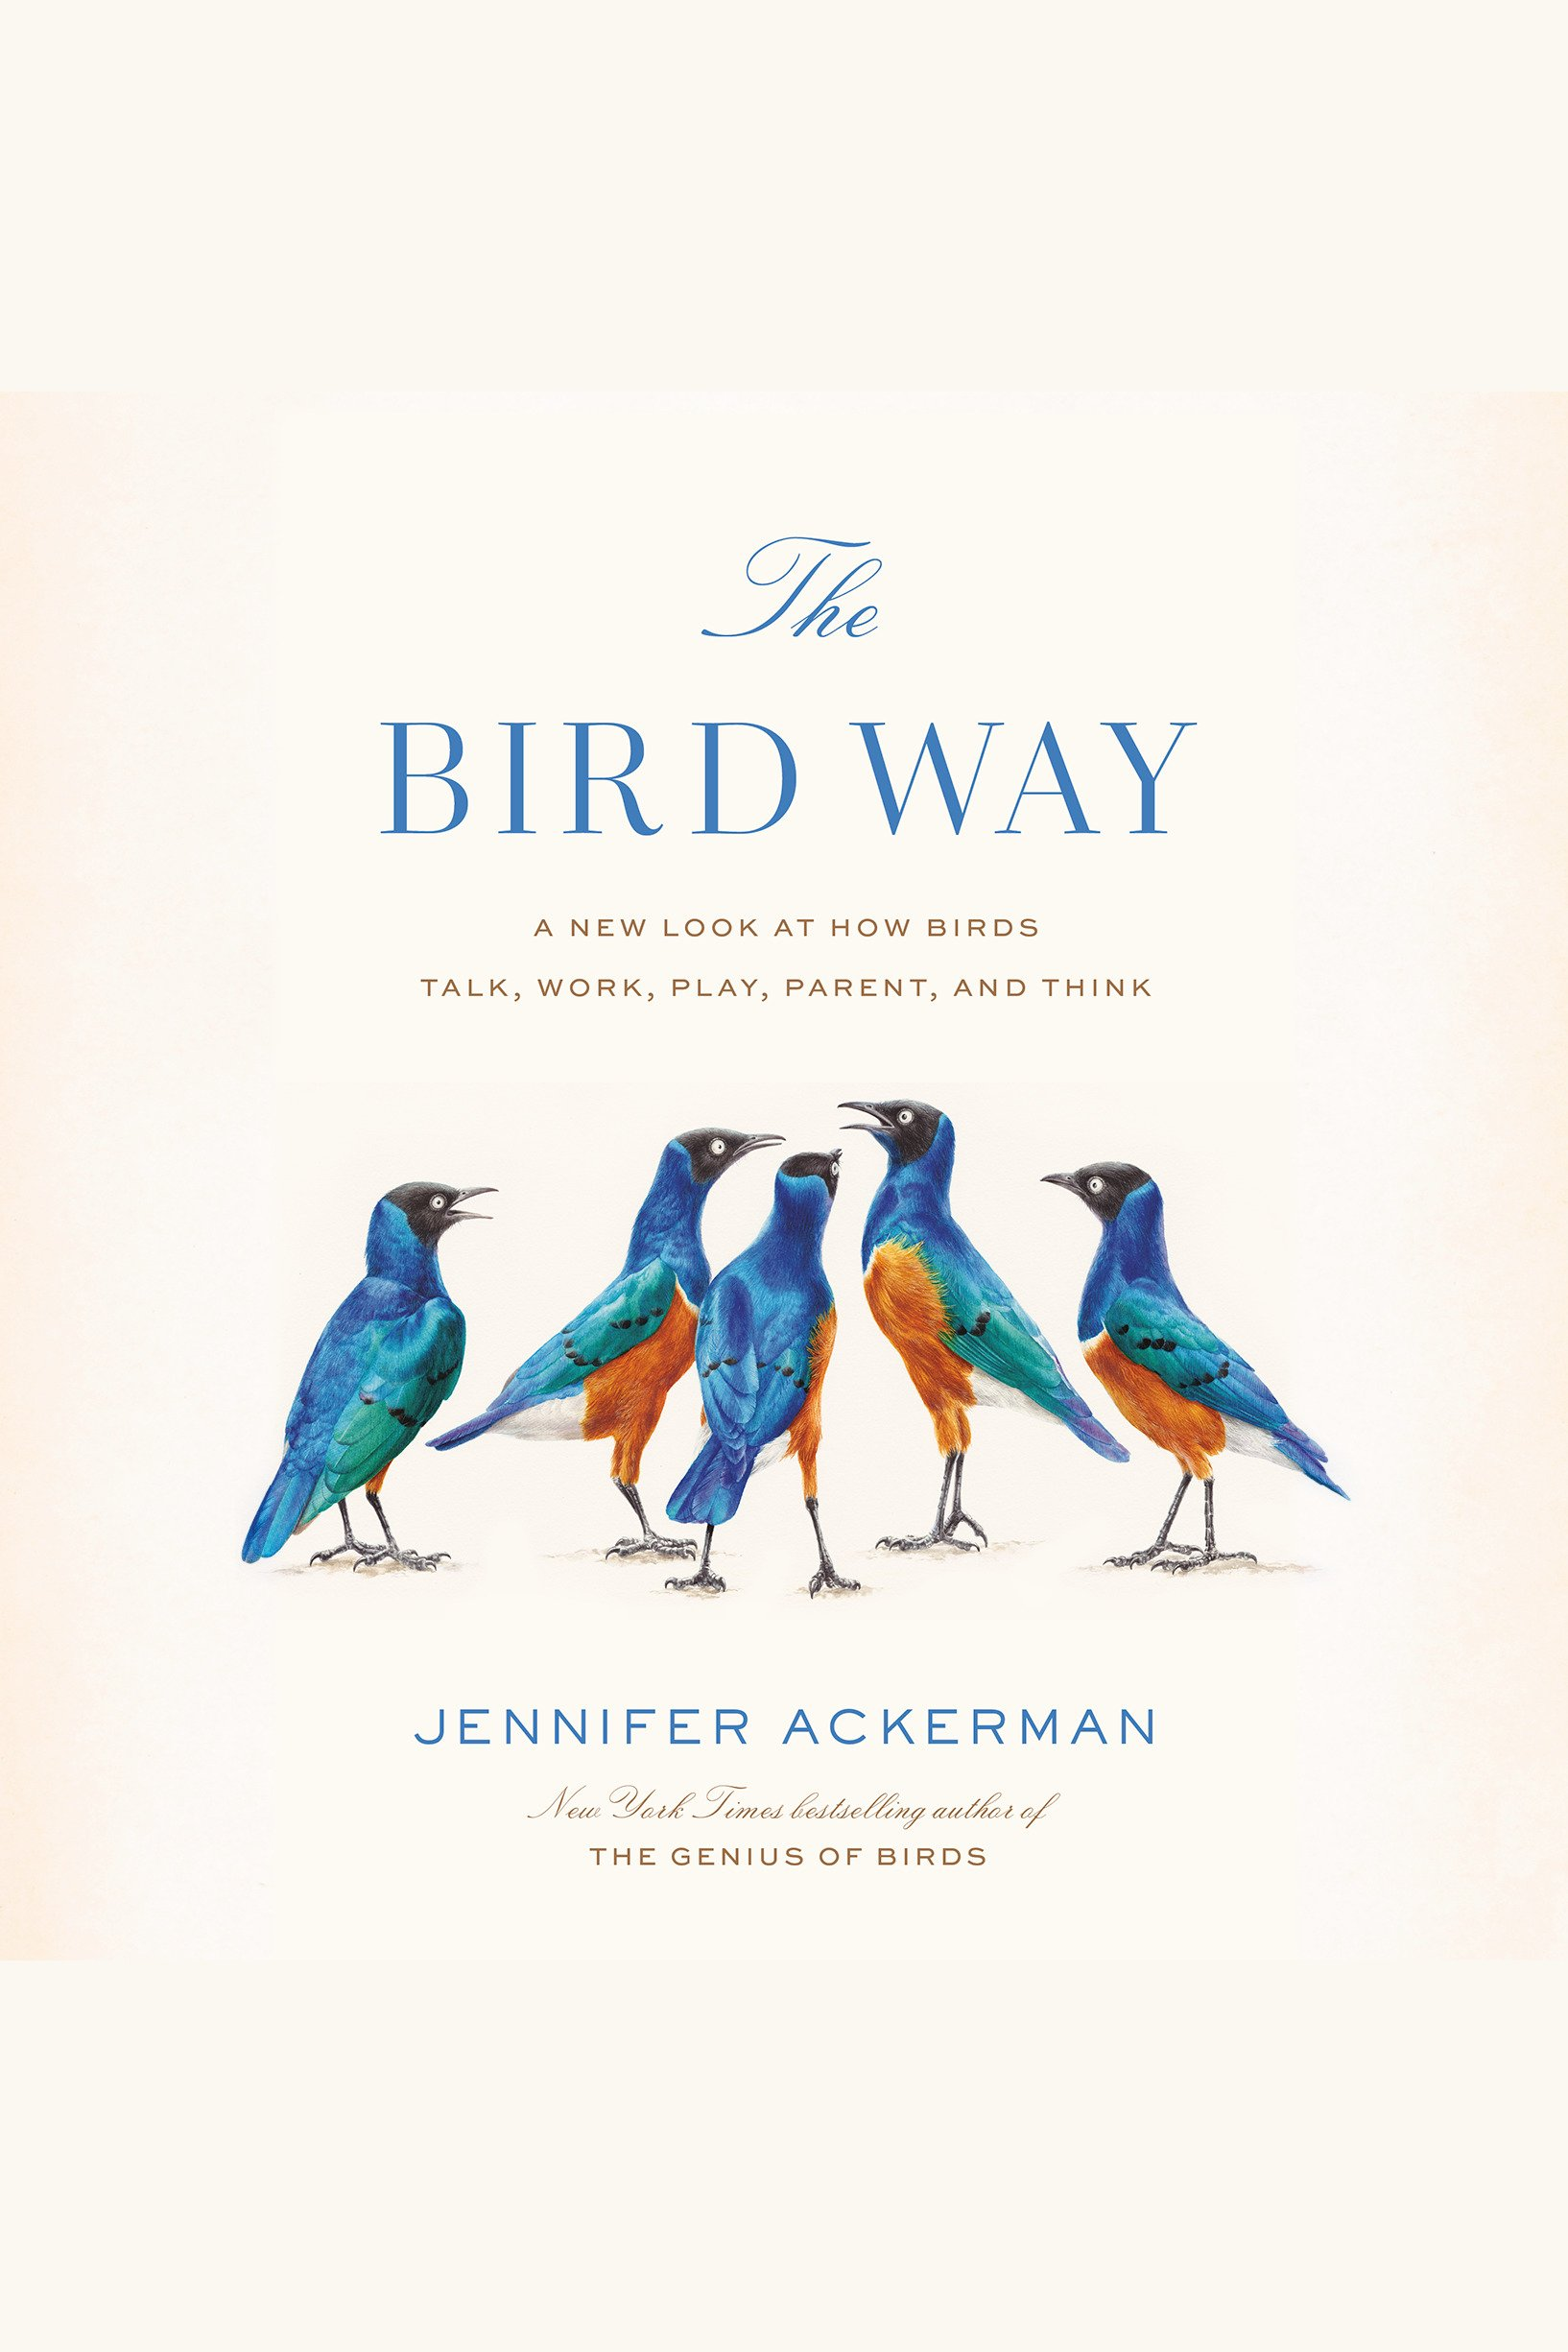 Bird Way, The [electronic resource] : A New Look at How Birds Talk, Work, Play, Parent, and Think